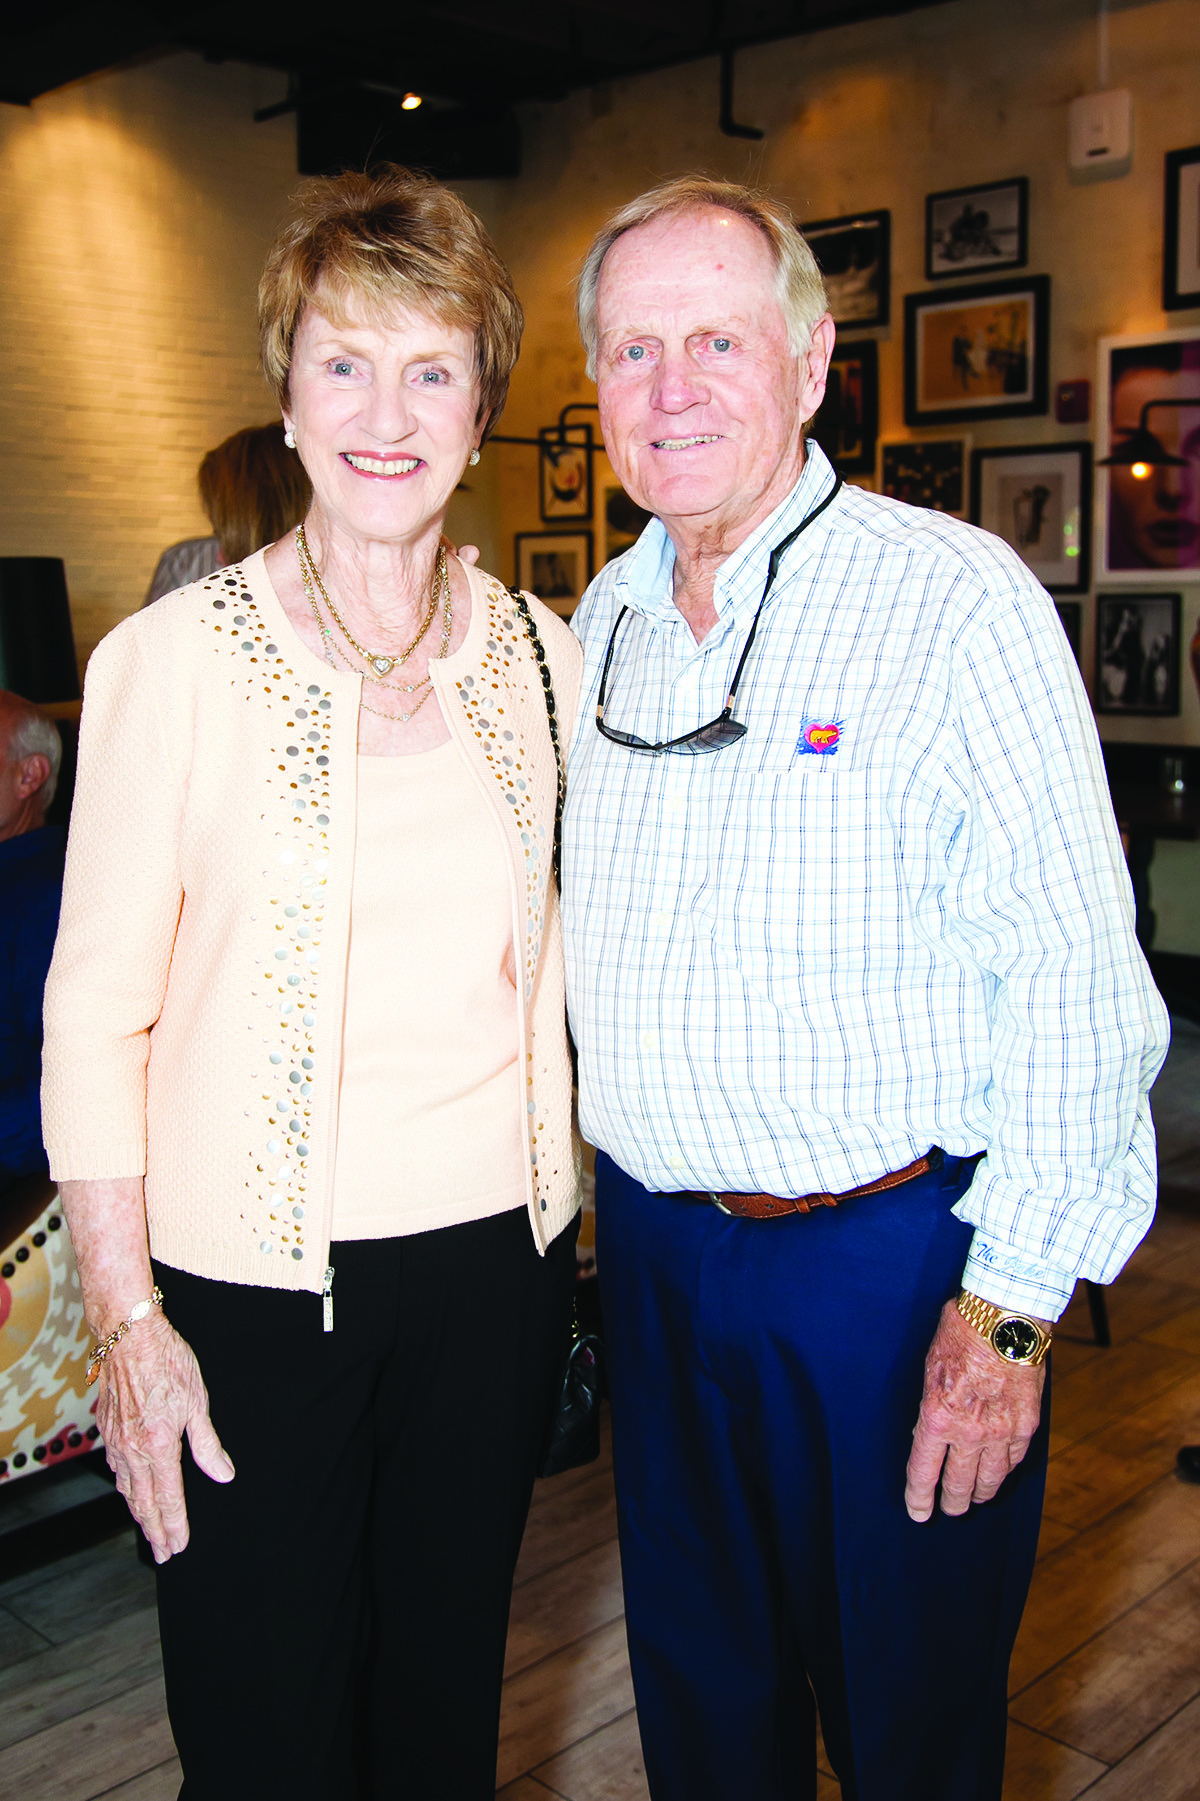 Society Scene photos - Barbara and golf legend Jack Nicklaus